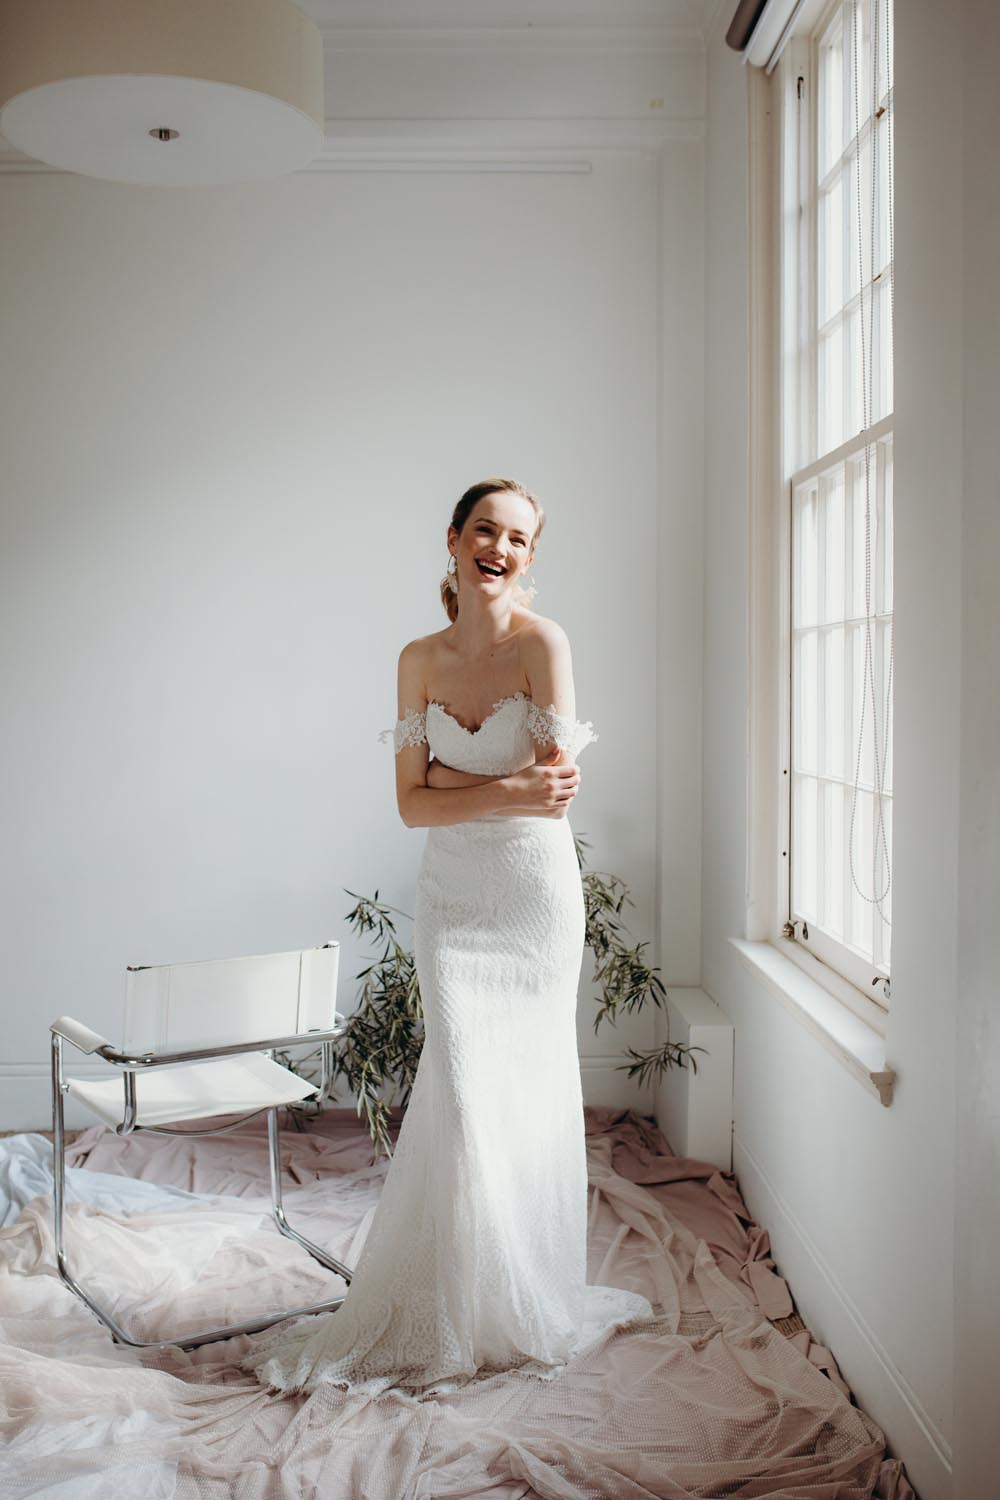 Aster wedding dress by Daisy